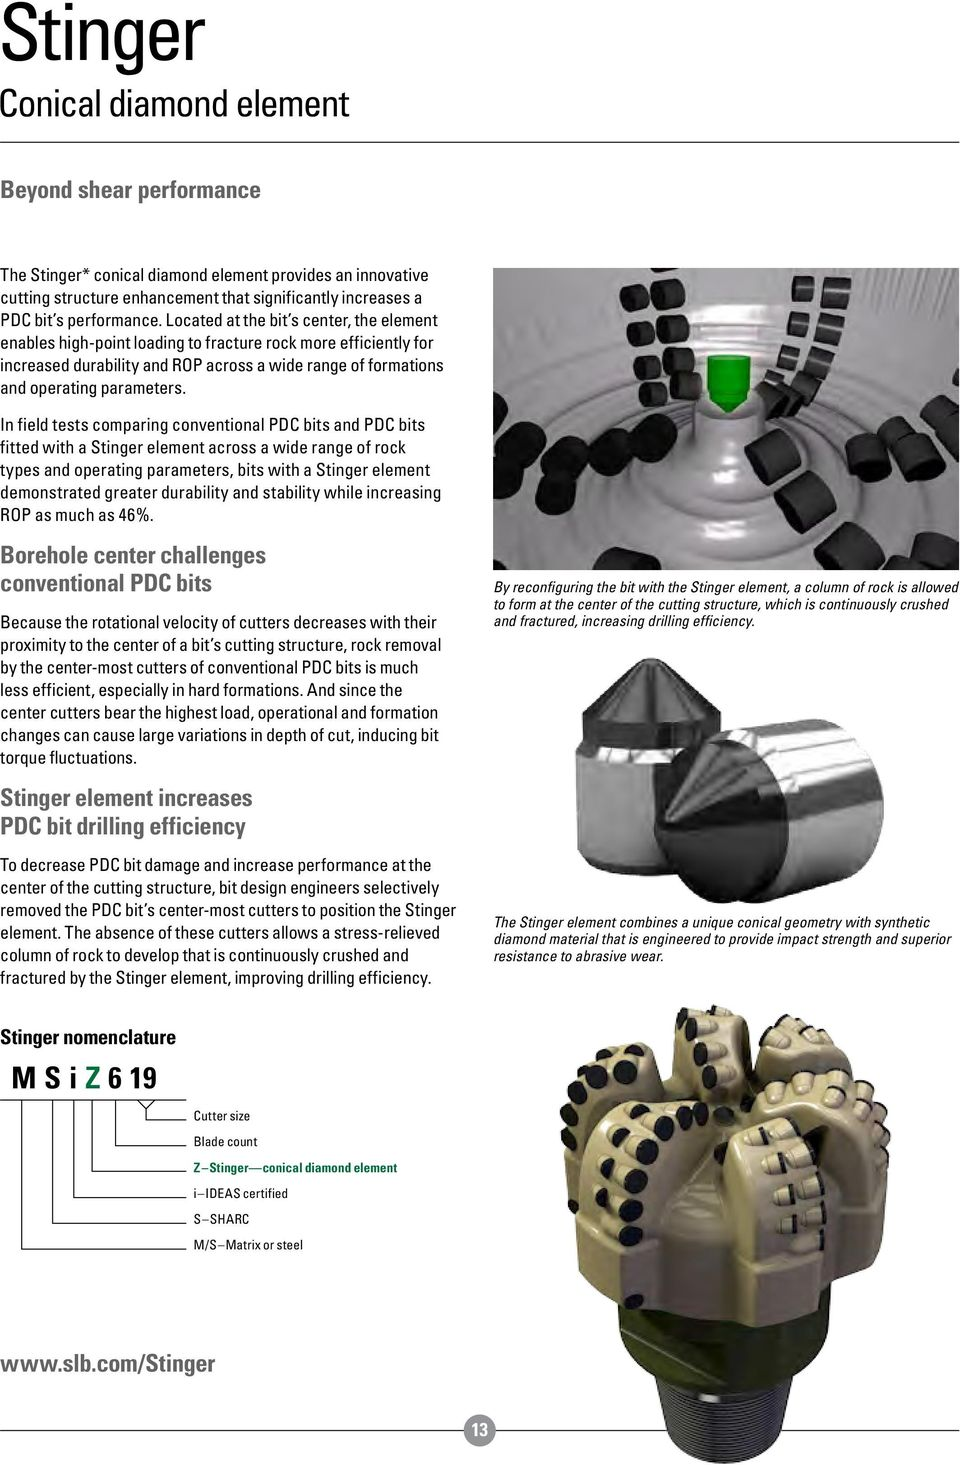 In field tests comparing conventional PDC bits and PDC bits fitted with a Stinger element across a wide range of rock types and operating parameters, bits with a Stinger element demonstrated greater